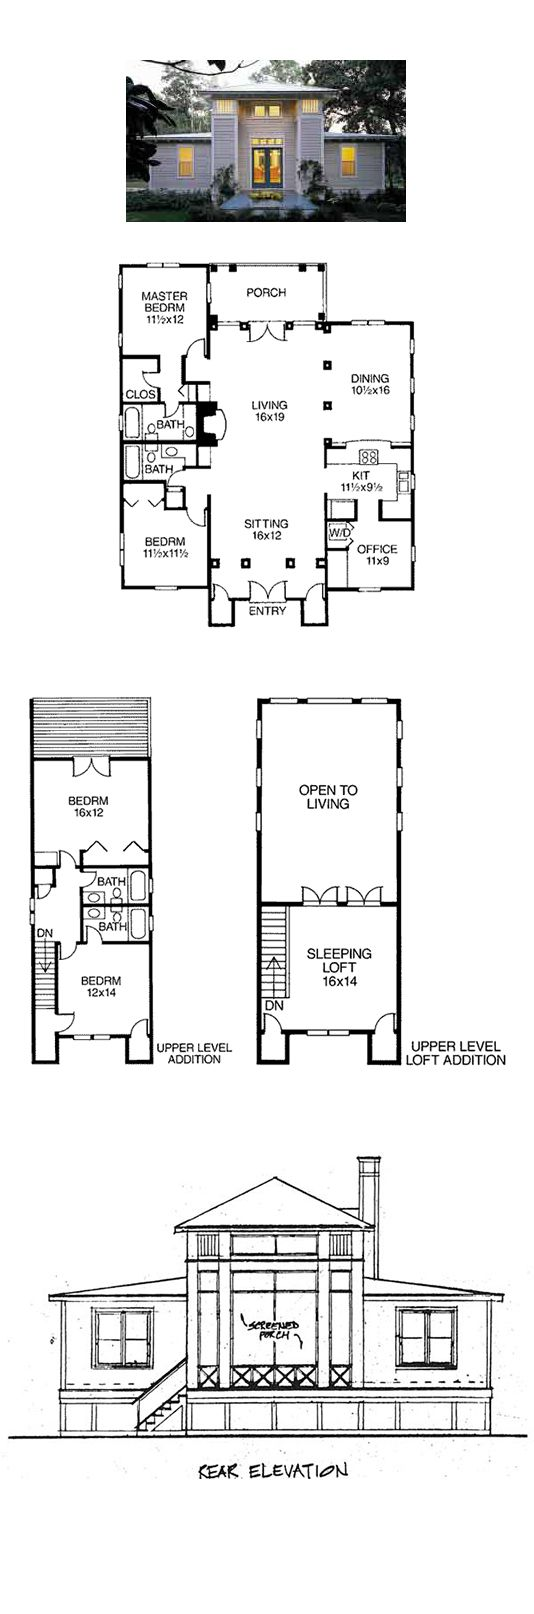 85 best floor plans images on pinterest house floor plans cool house plans offers a unique variety of professionally designed home plans with floor plans by accredited home designers styles include country house